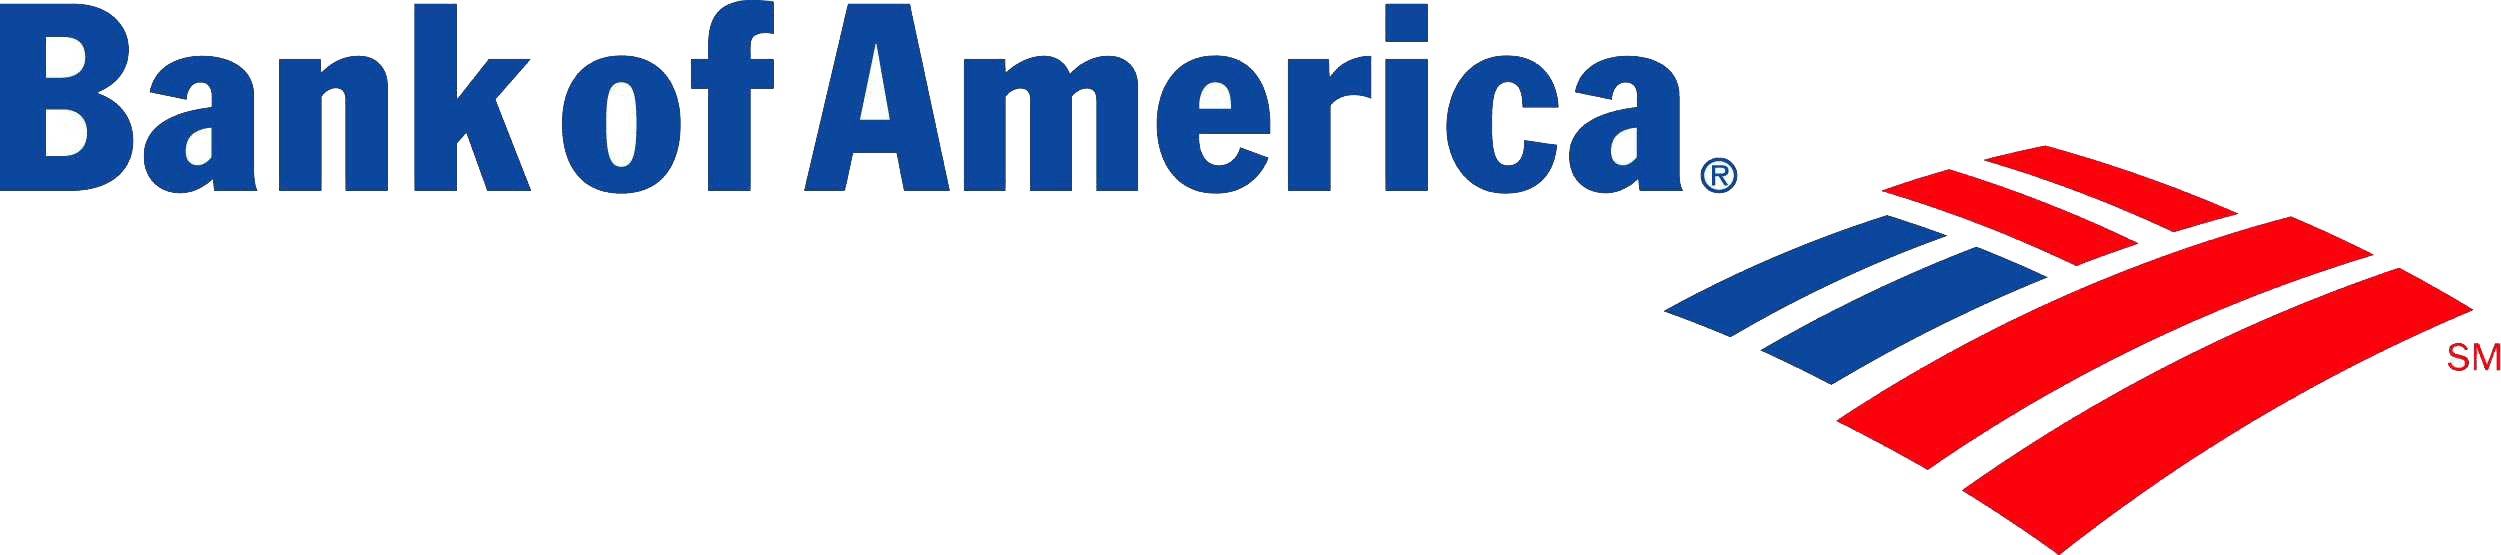 Bank of America Logo - bank-of-america-logo | National Center for Civil and Human Rights